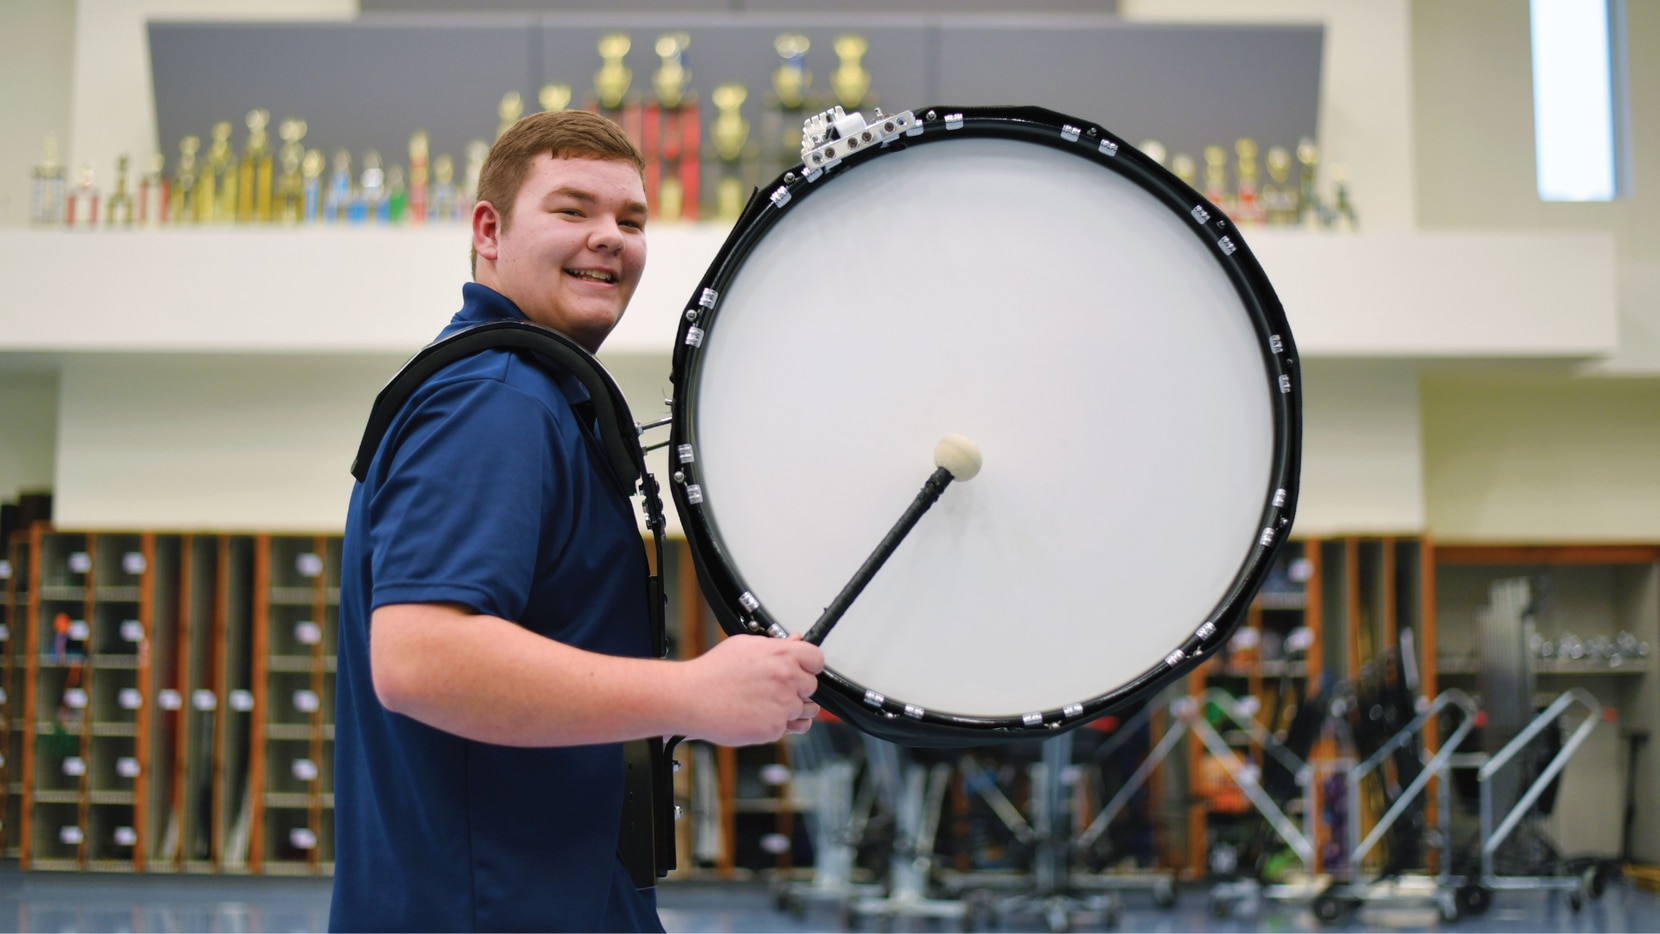 Luke of McKinney North High School is one of an estimated 9 million school-age youth in the U.S. affected by scoliosis. After his diagnosis, he was referred to Scottish Rite, a world-renowned pediatric orthopedics institution.